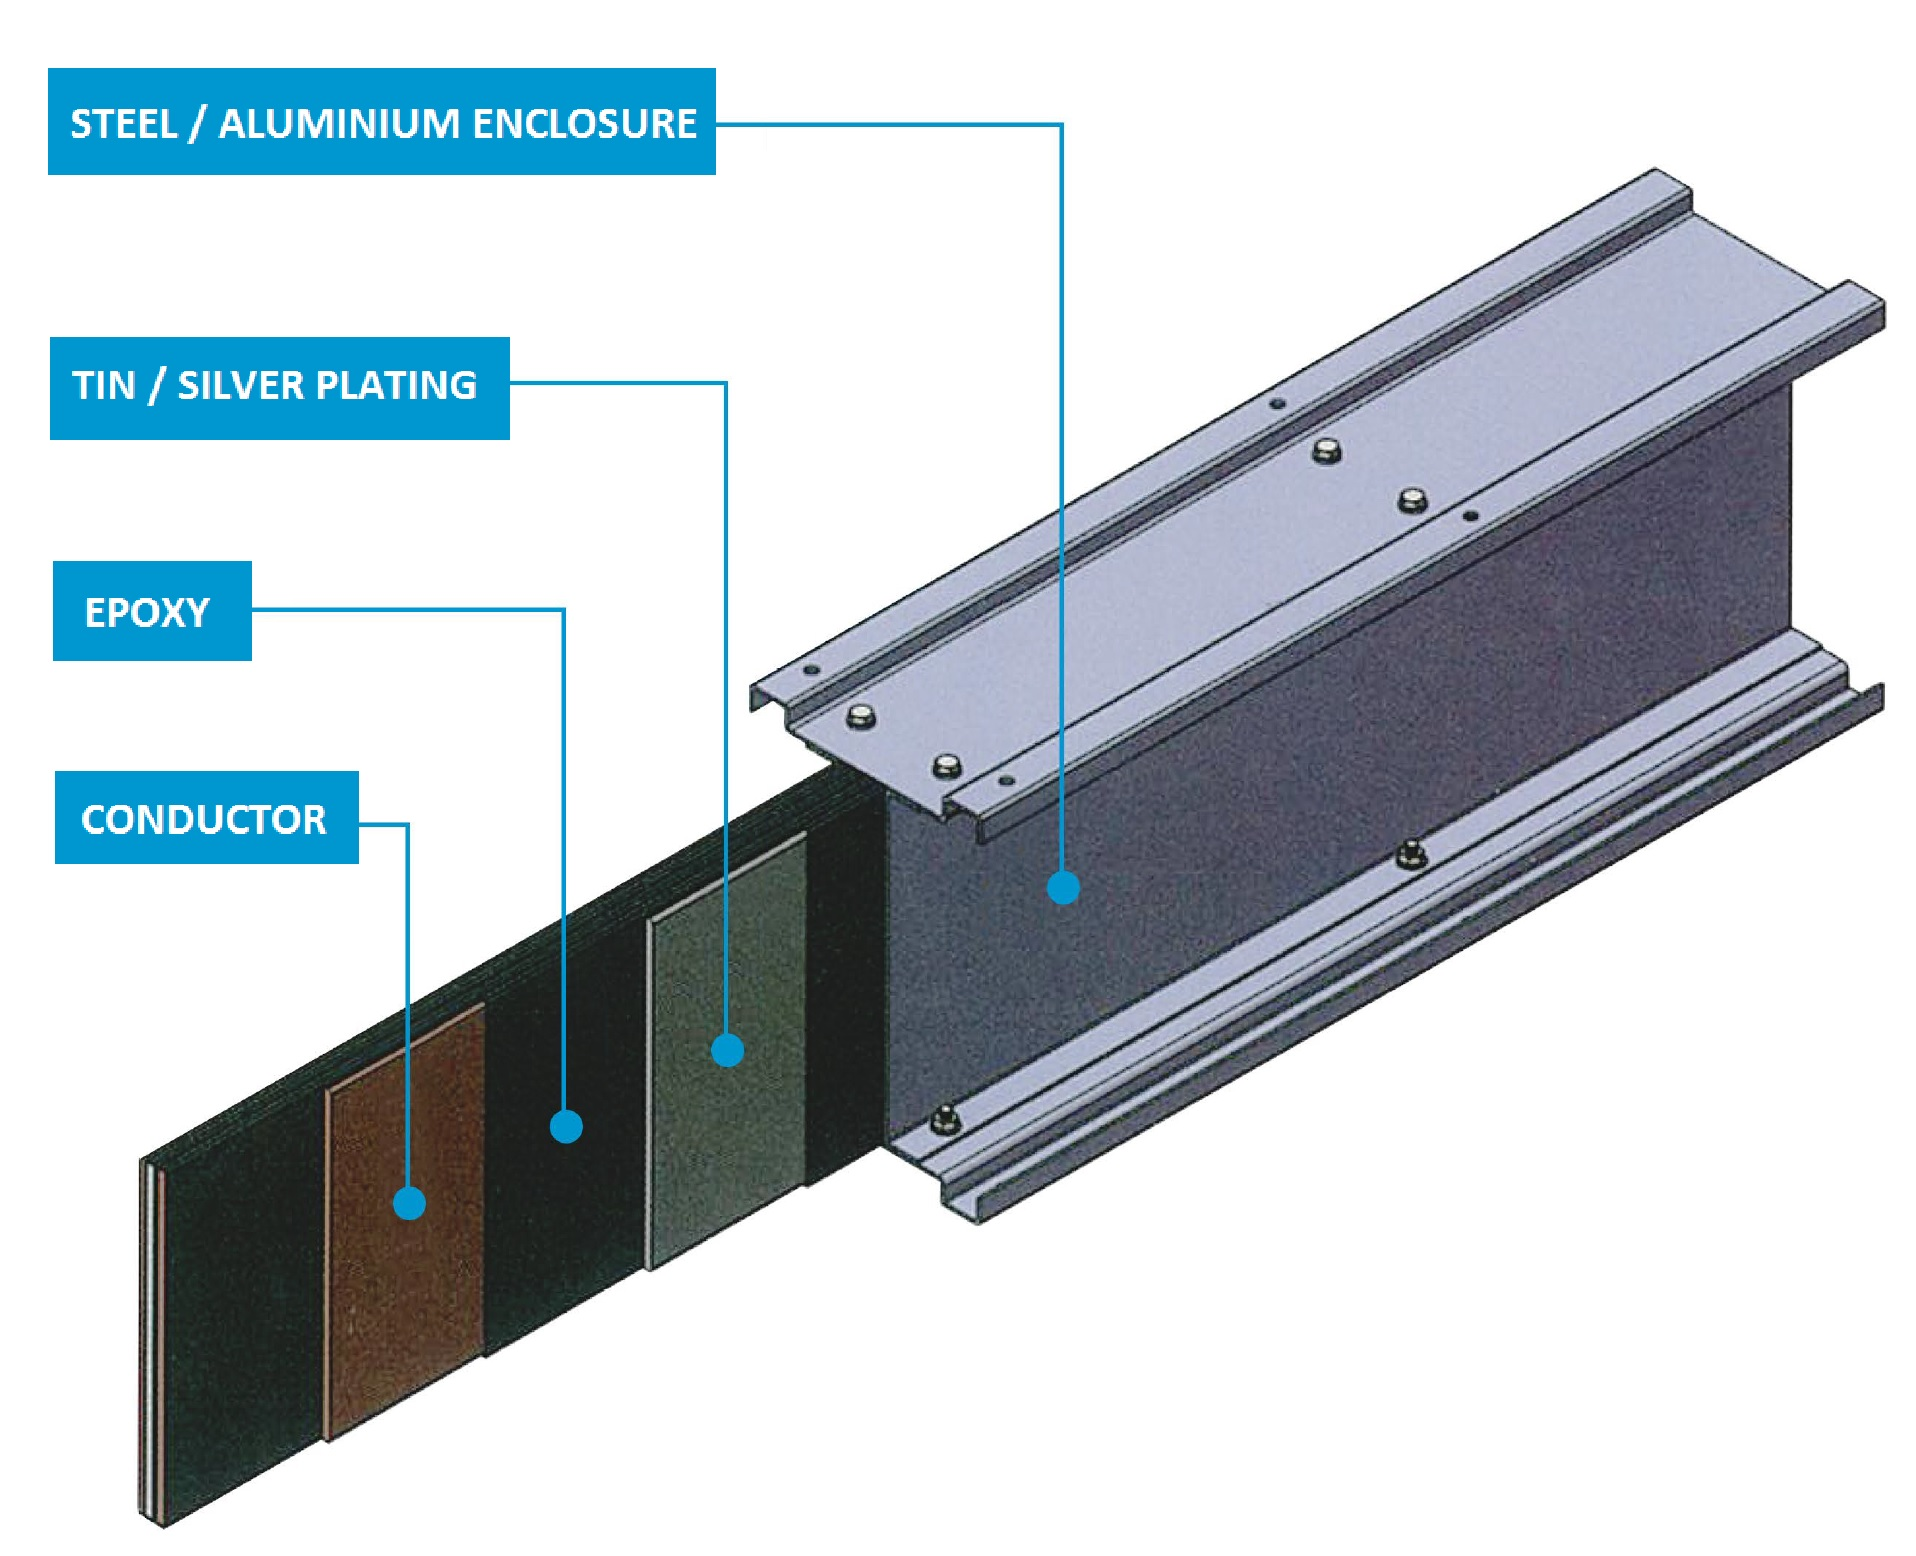 MEGADUCT INSULATION